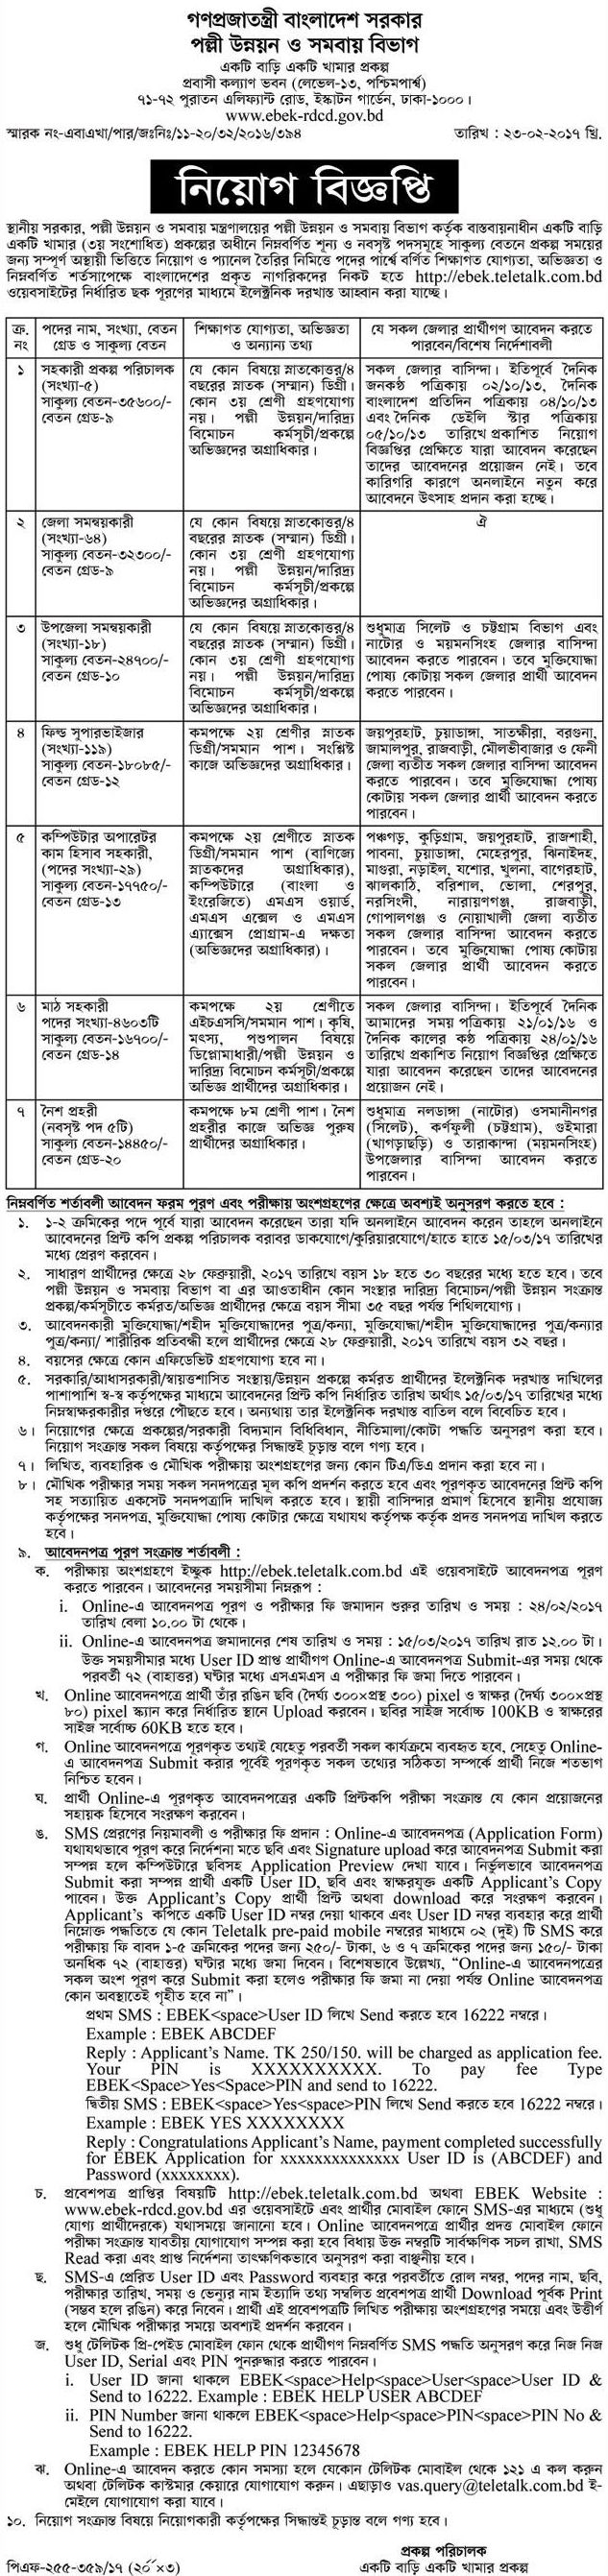 4843 Vacancy  Rural Development and Co-Operative Division Job Circular